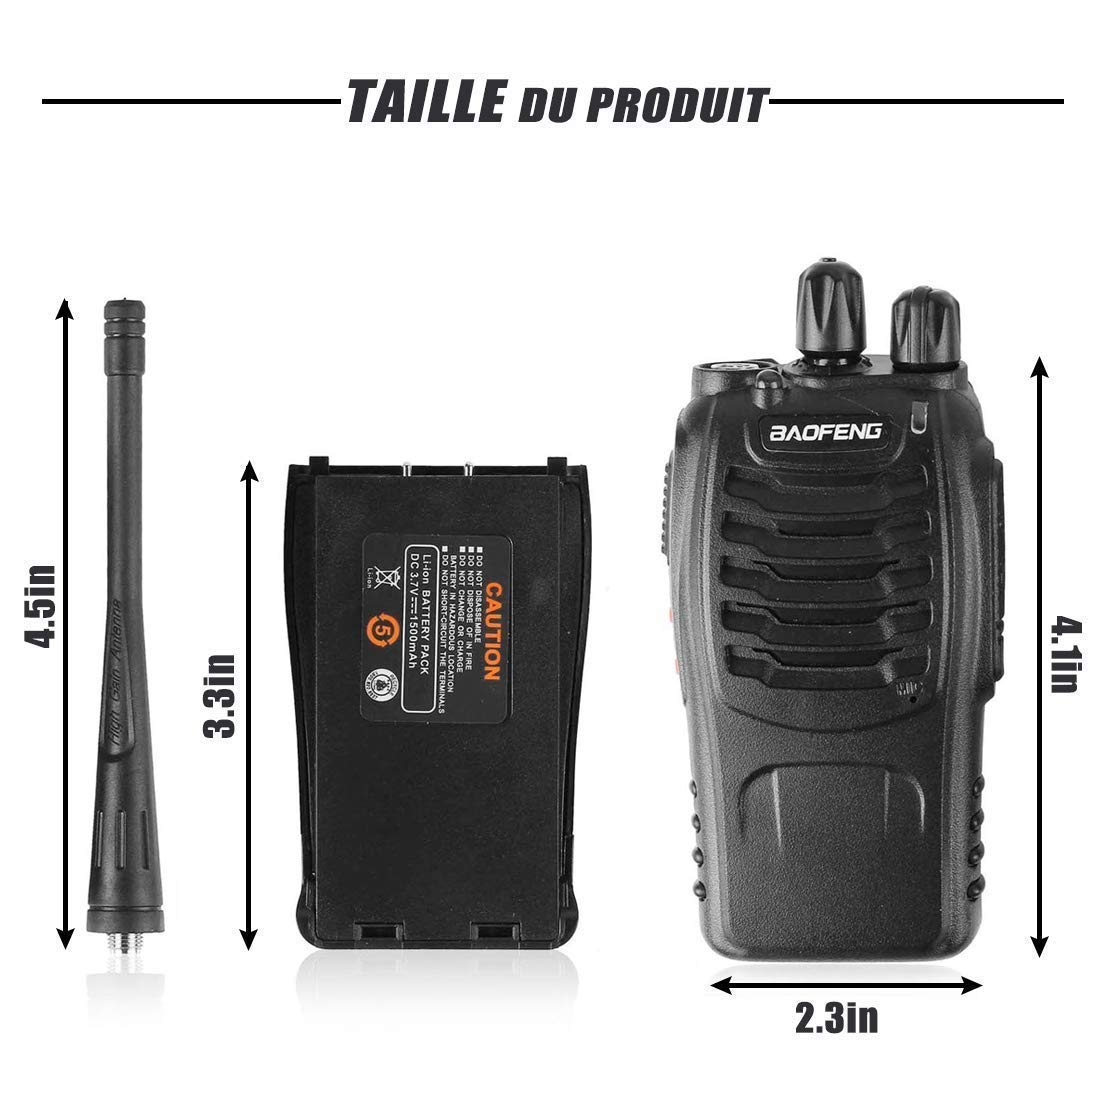 CDC DIGI 2PCS BF-888S USB Rechargeable Walkie Talkies Long Range Two-Way Radio Walky Talky with Earpieces 16CH Handheld Transceiver with LED Light for Field Survival Biking Hiking